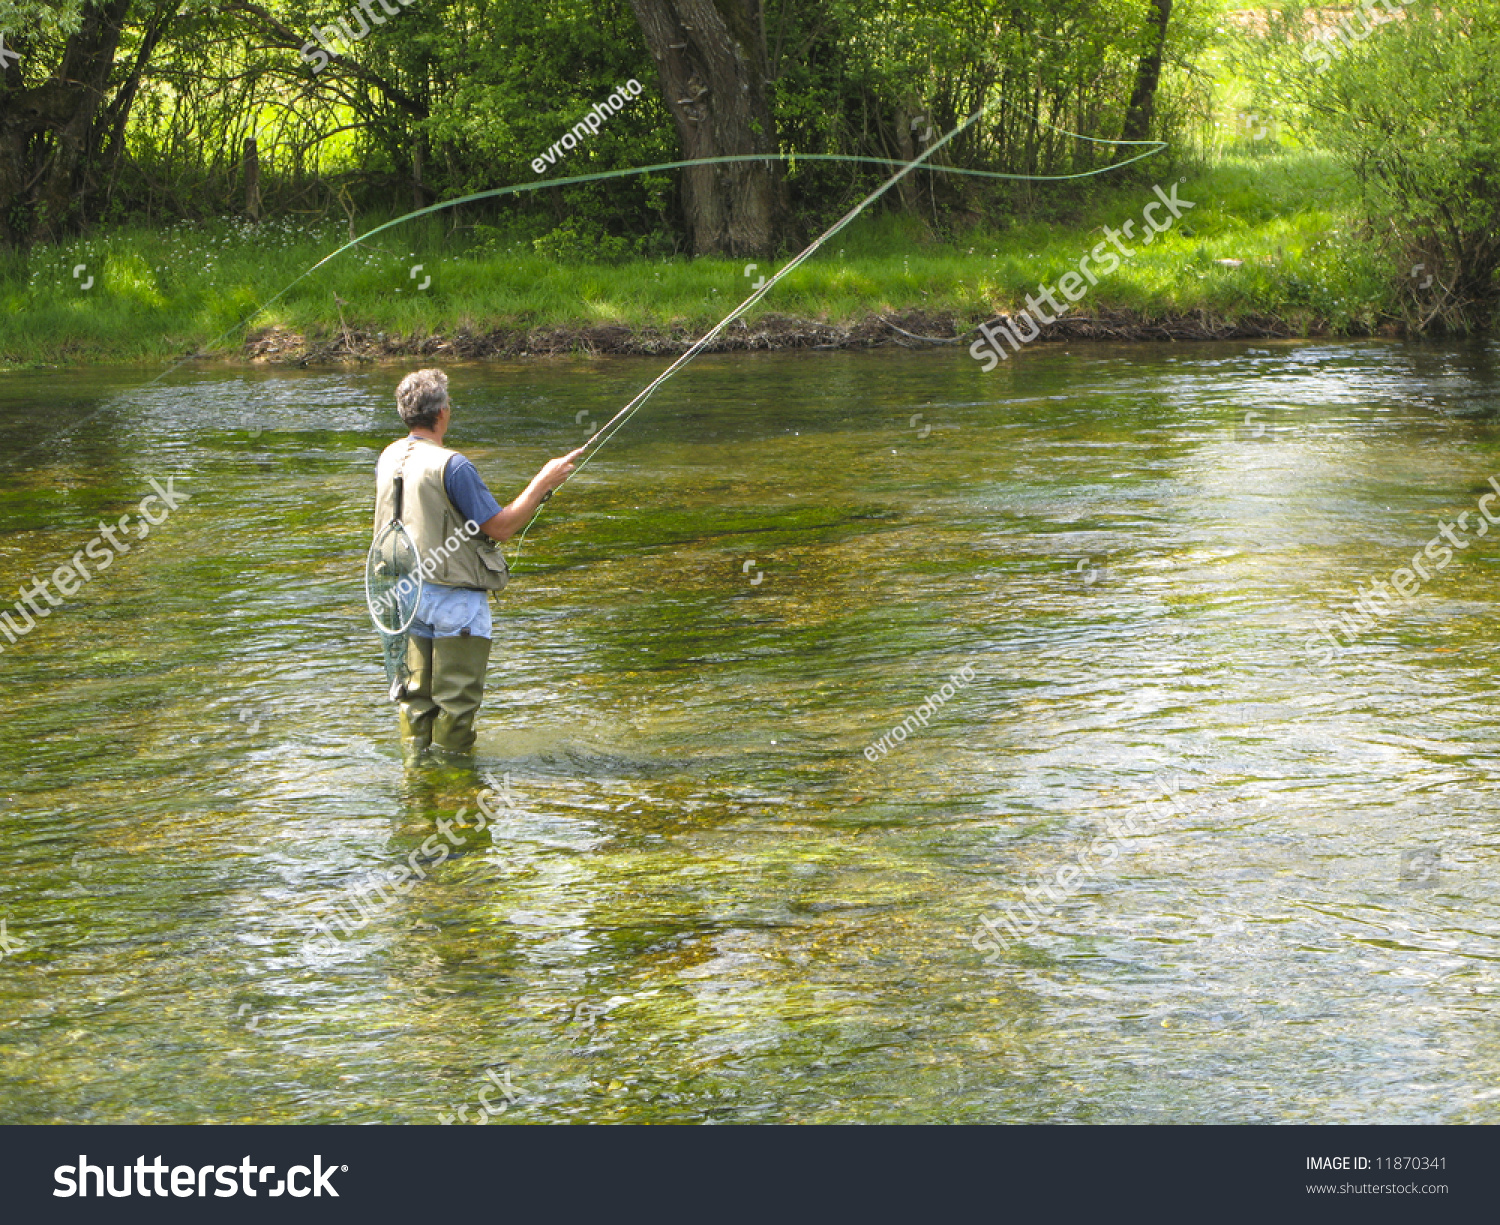 Fly fishing on ribnik river stock photo 11870341 for Fly fishing photography